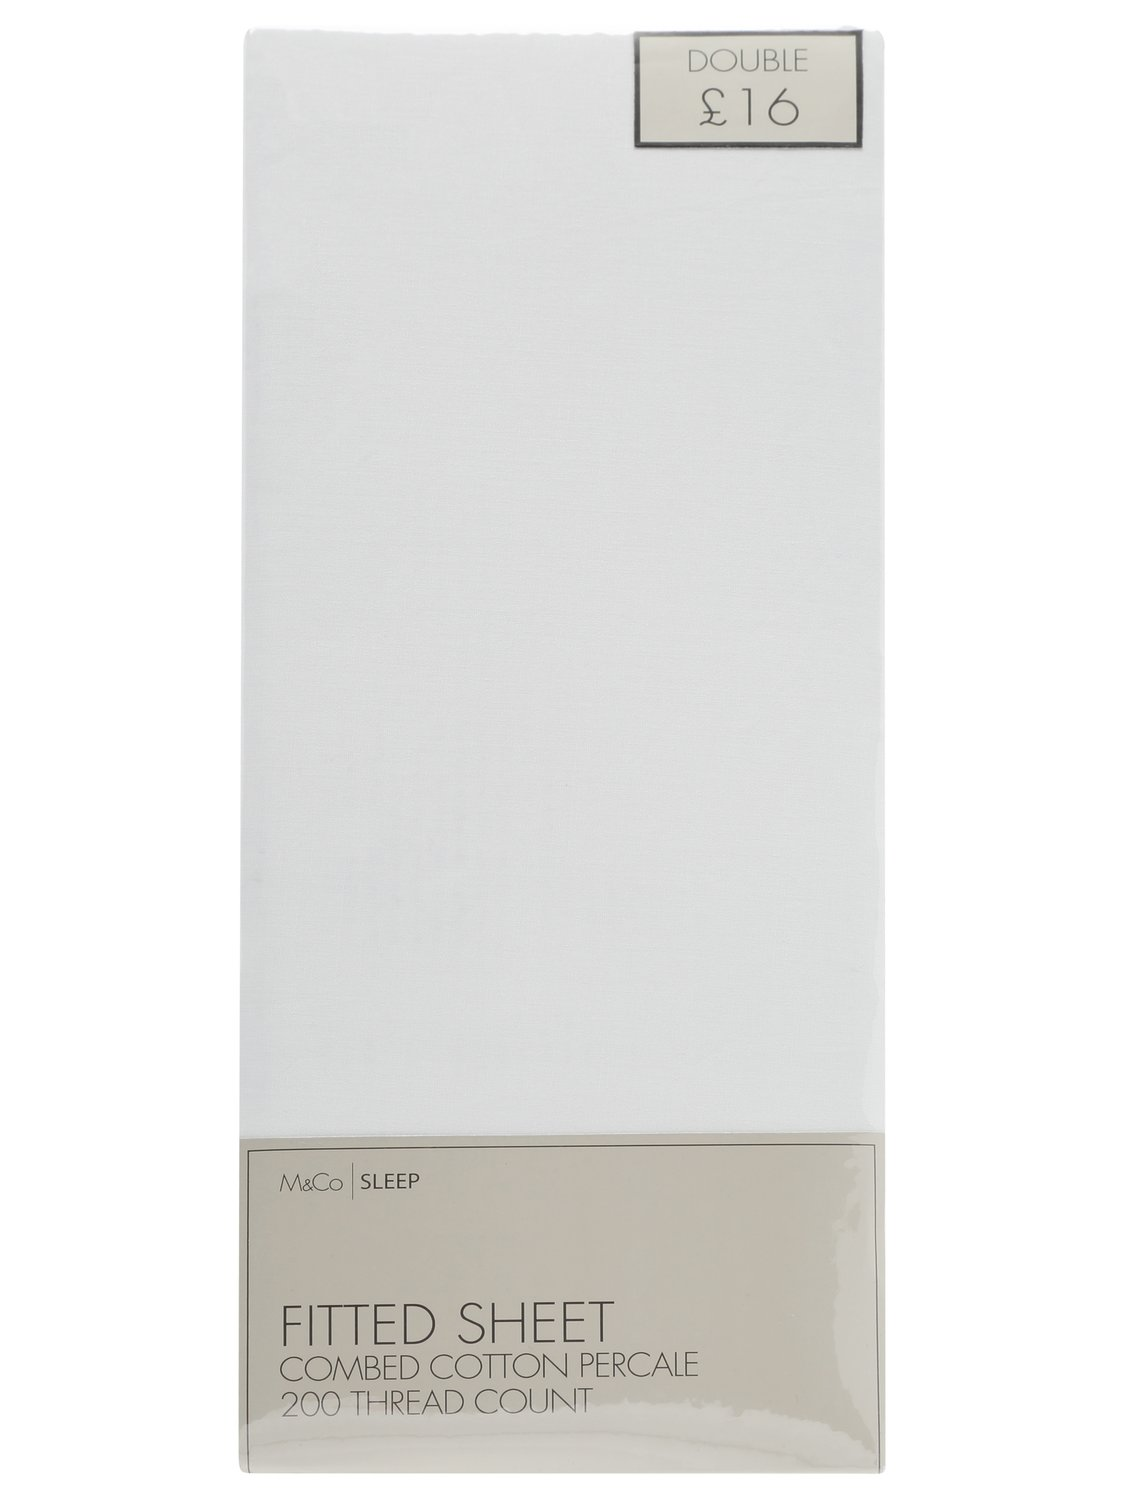 Image of 100% Cotton fitted sheet 200 thread count single double king and super king sizes - White